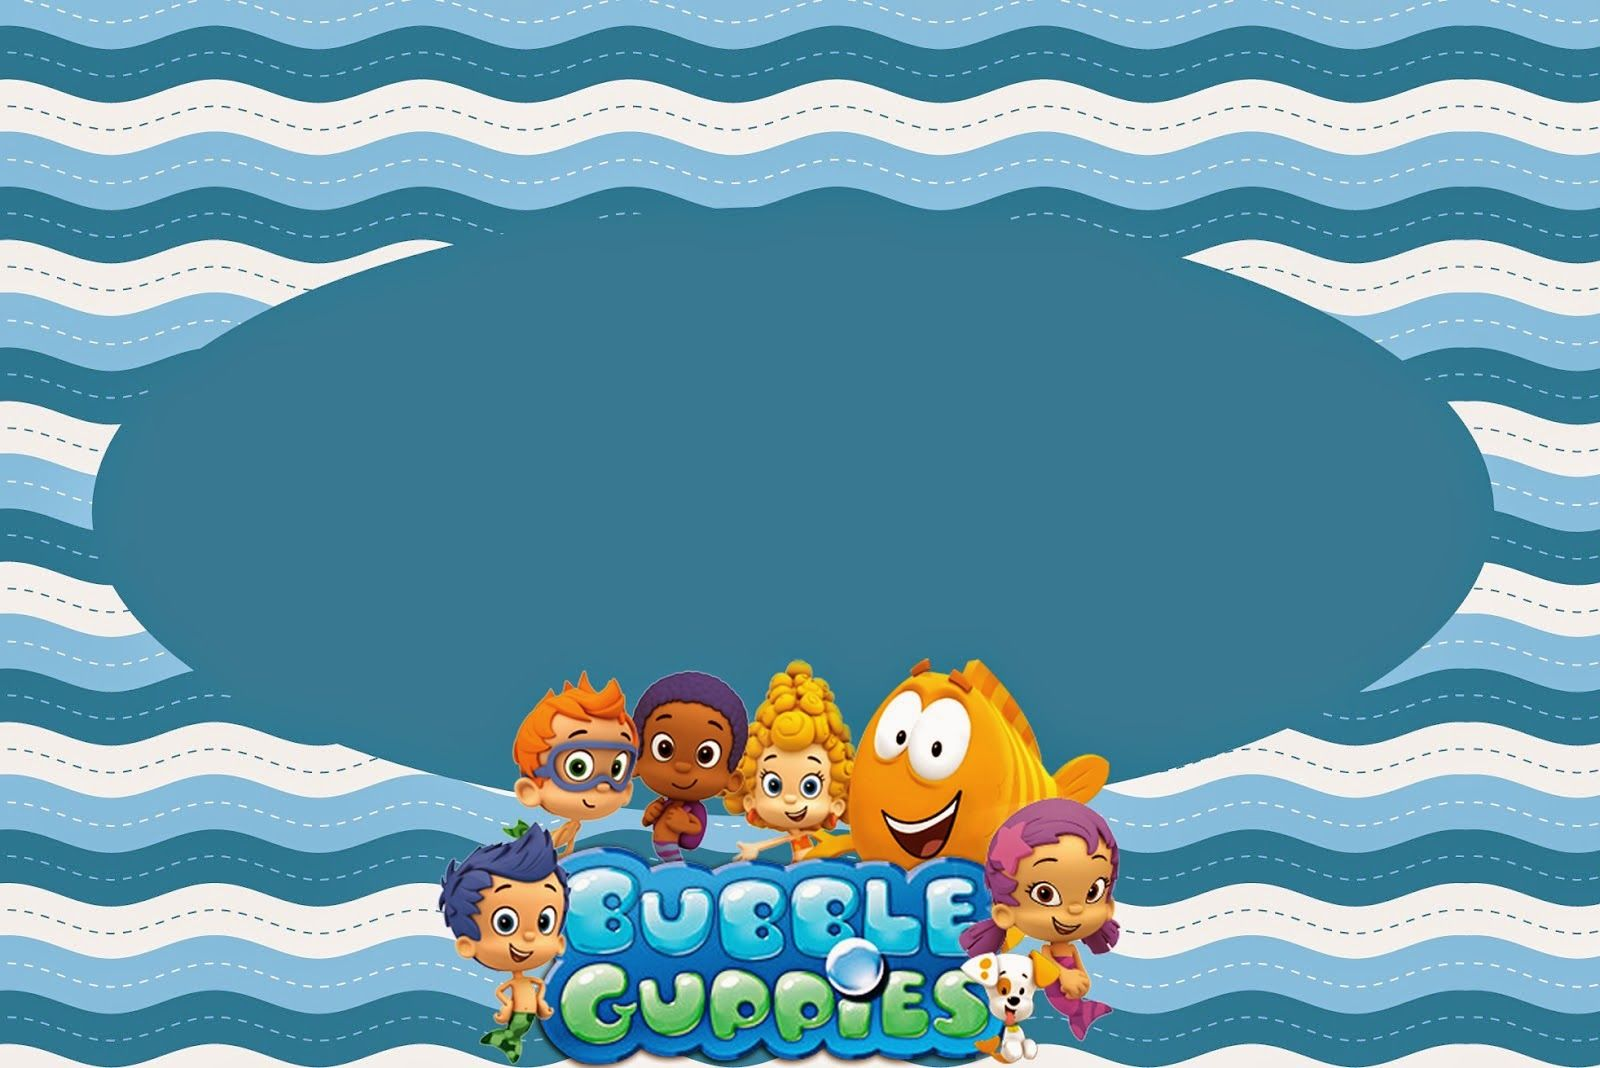 Bubble Guppies: Invitaciones para Imprimir Gratis. | HUC bday ...